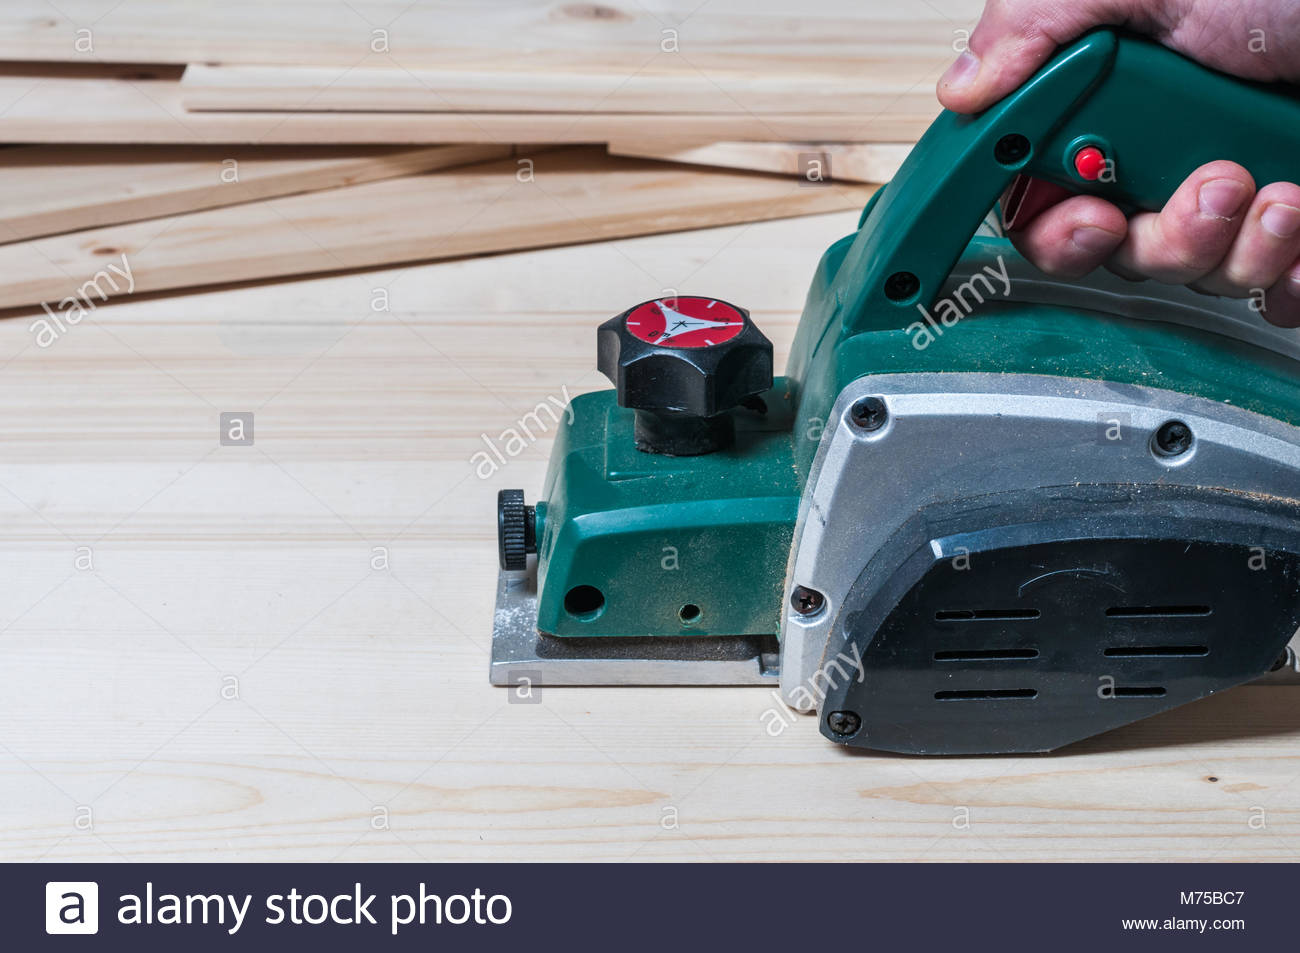 Electric Planer Stock Photos Images Alamy What Does An Do Carpenter Planing A Wood Surface With Tool Horizontal Composition